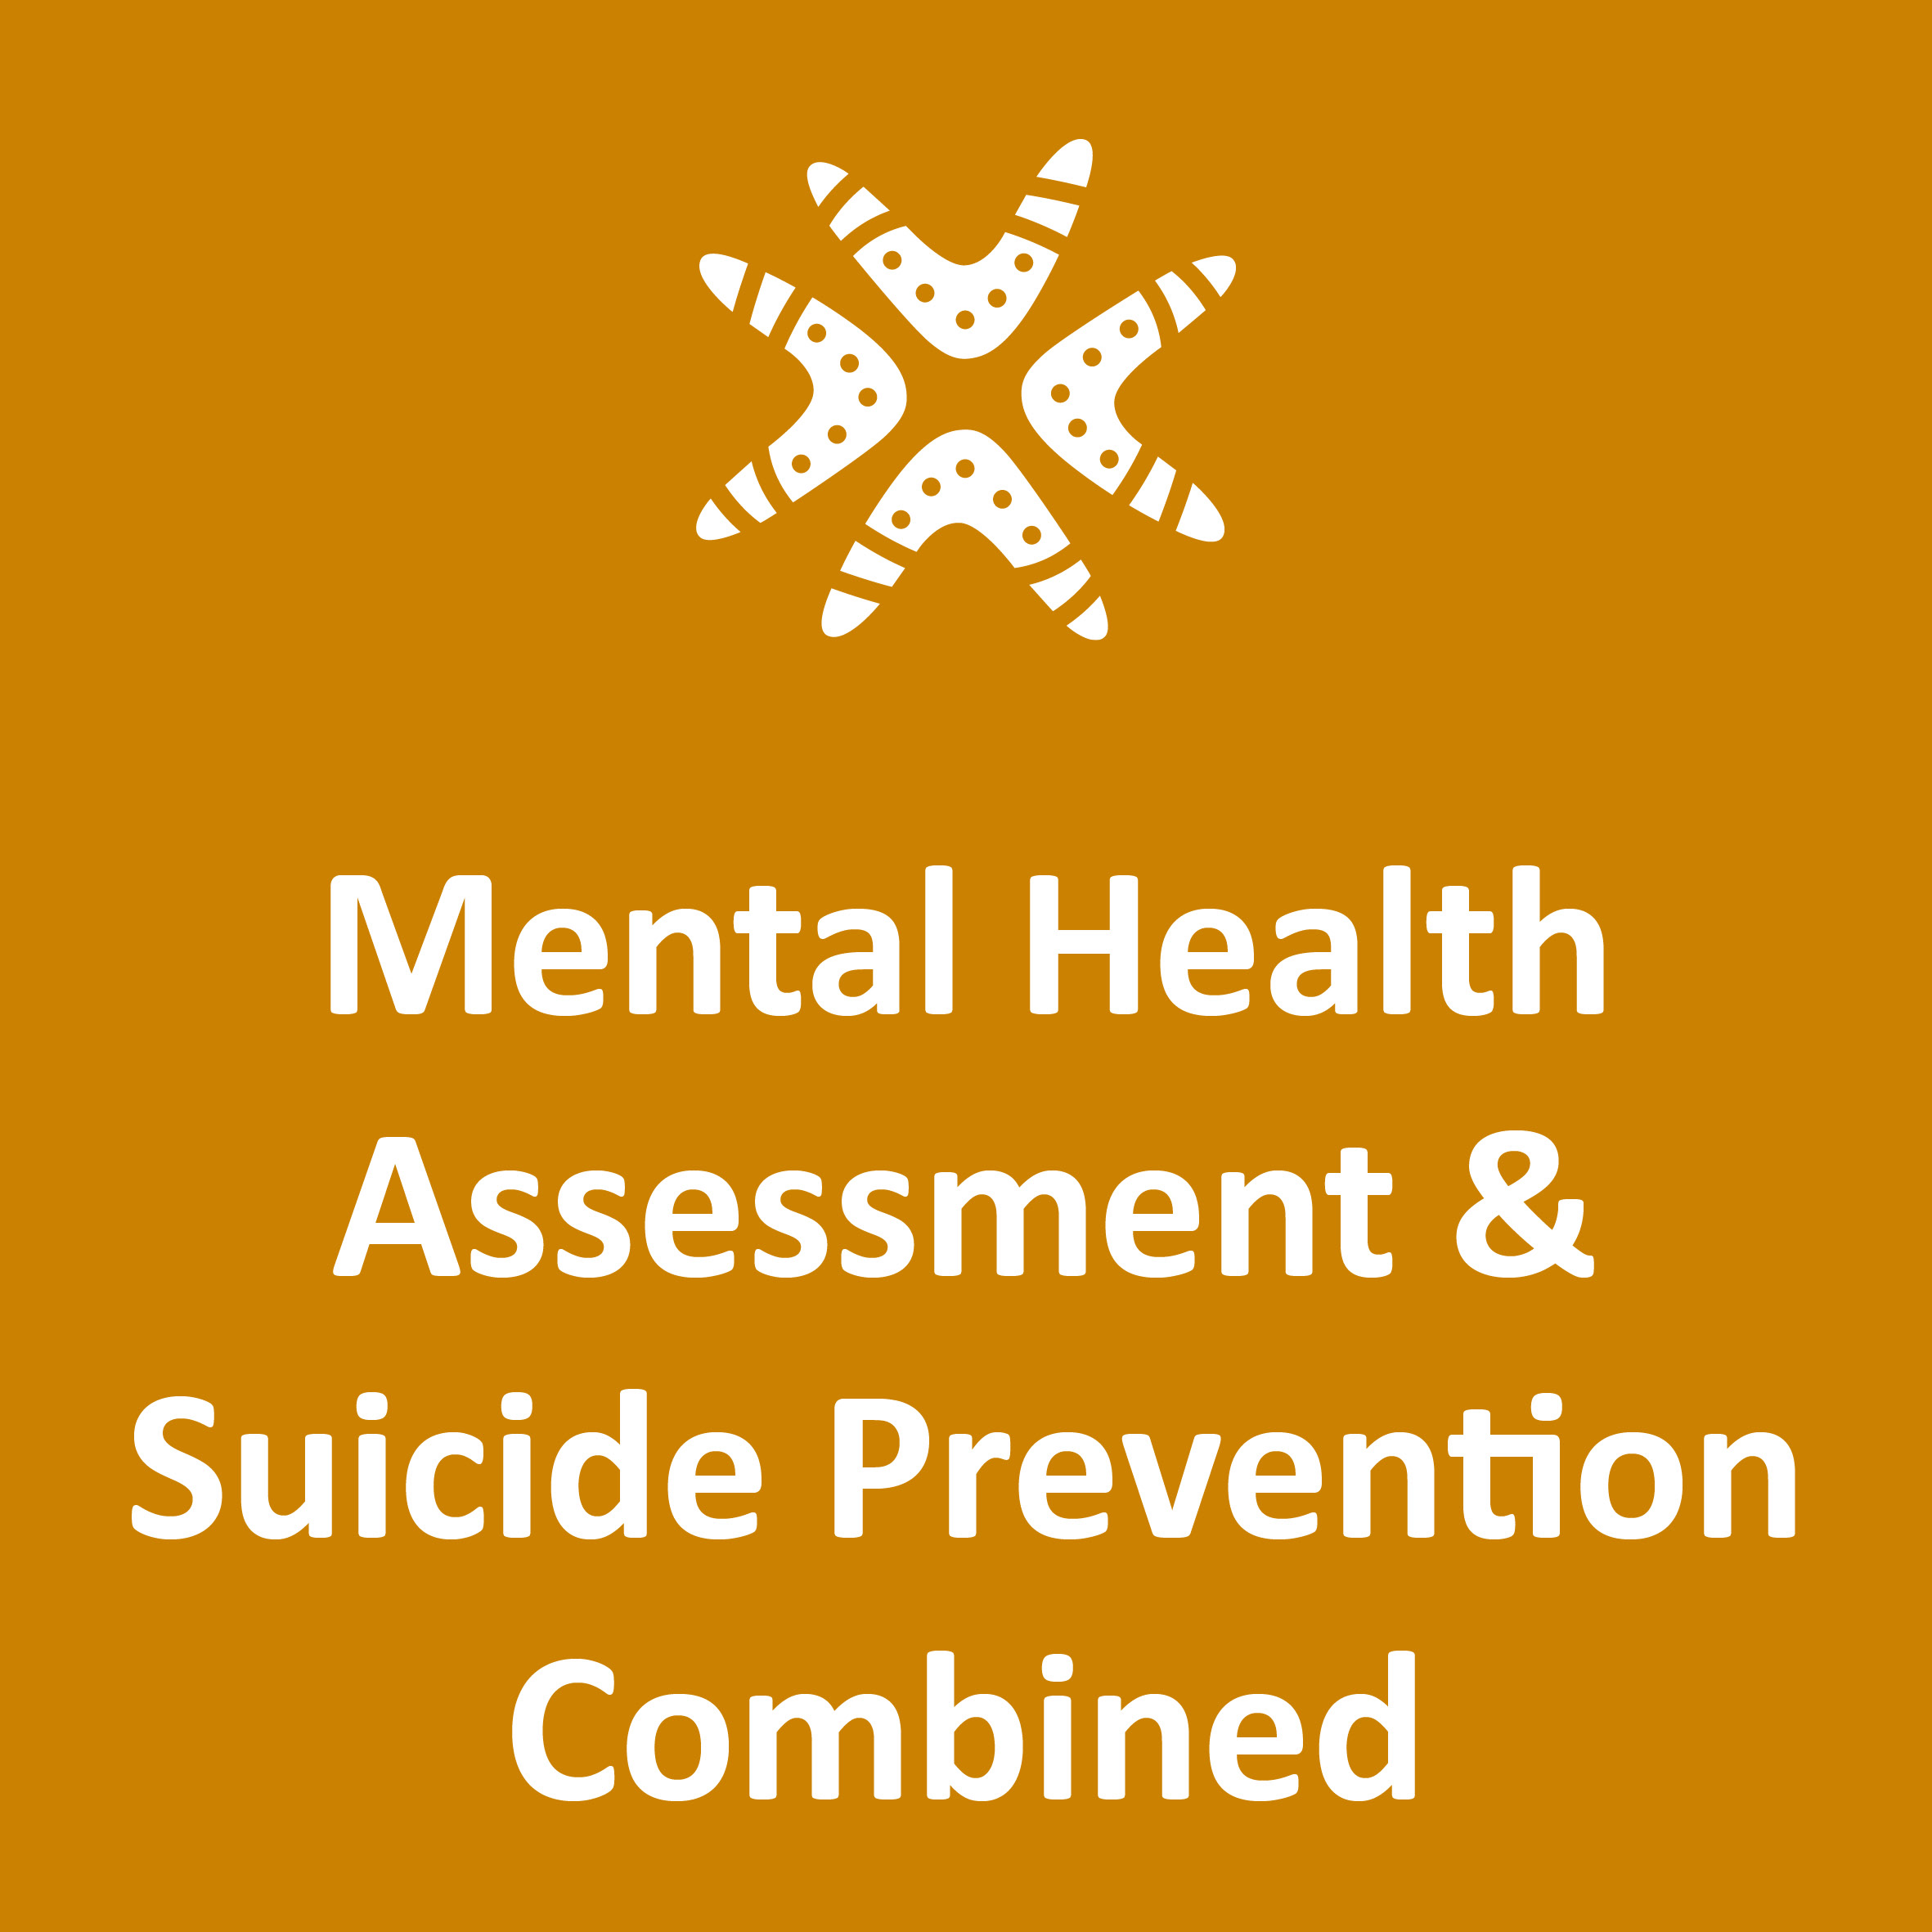 Aboriginal Mental Health Assessment & Suicide Prevention - 3 Day Workshop - Brisbane 18-20 July